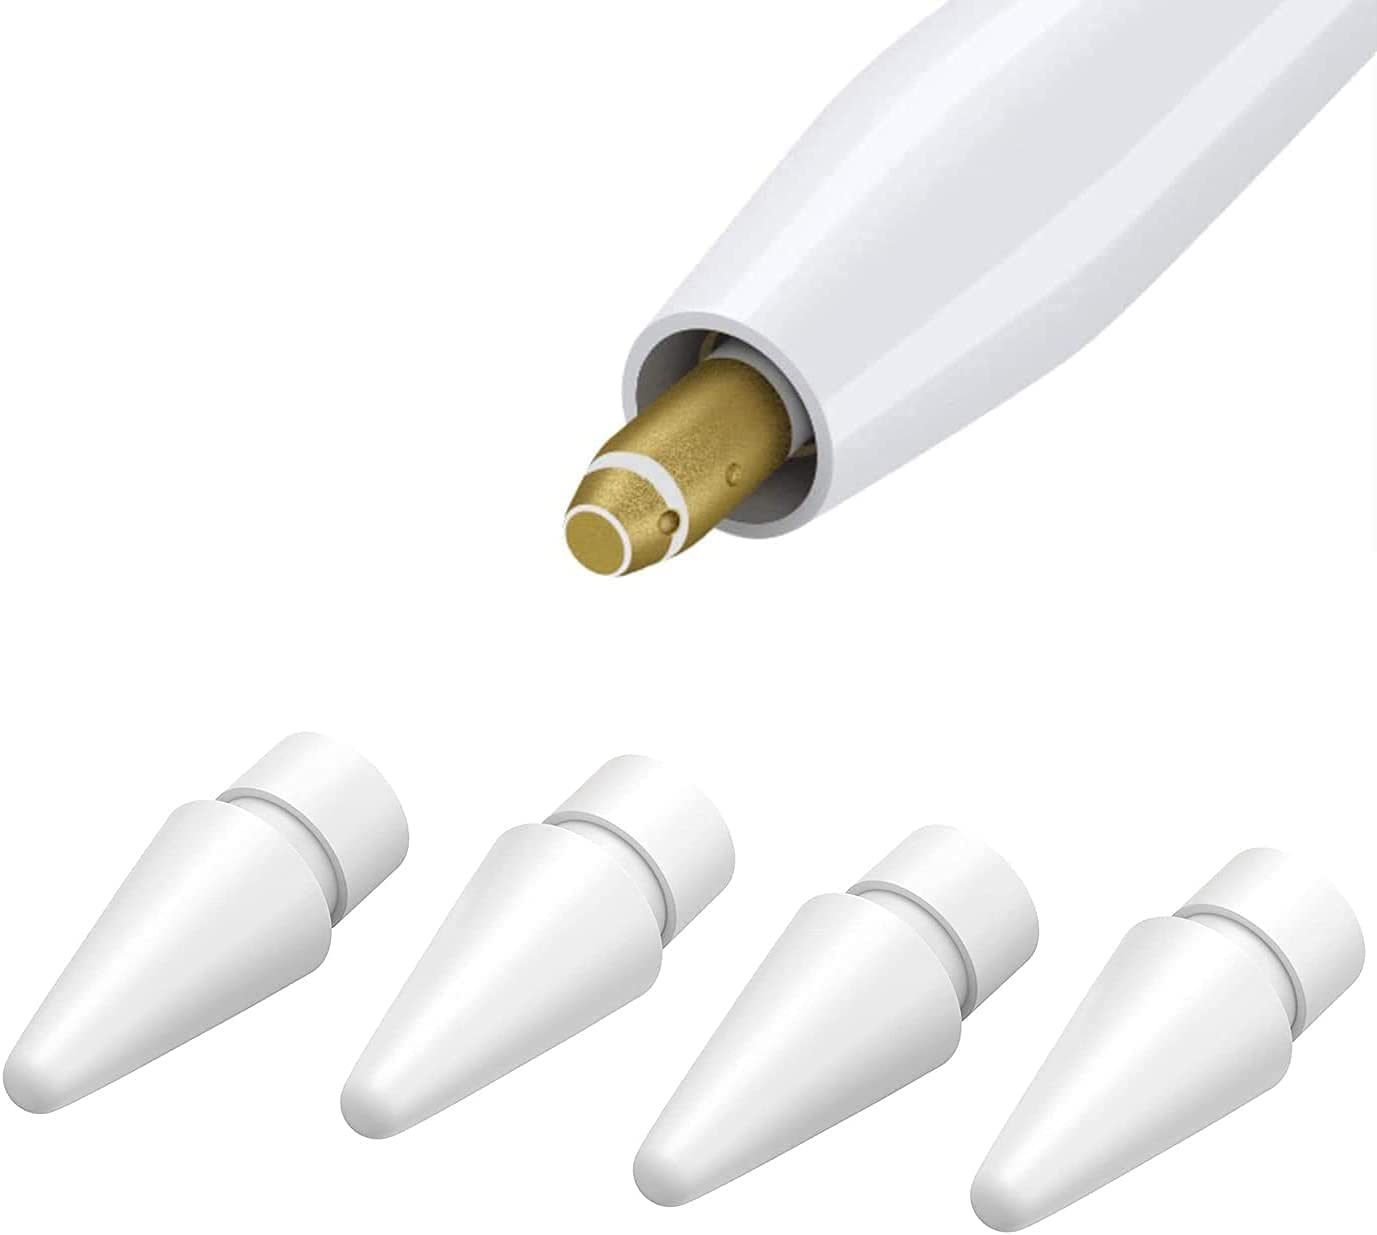 Replacement Tips Compatible with Apple Pencil 1st & 2nd Gen iPad Pro Pencil, High Sensitivity Apple Pencil Nibs for Apple Pencil 2 Gen iPad Pro Pencil White 4 Pack